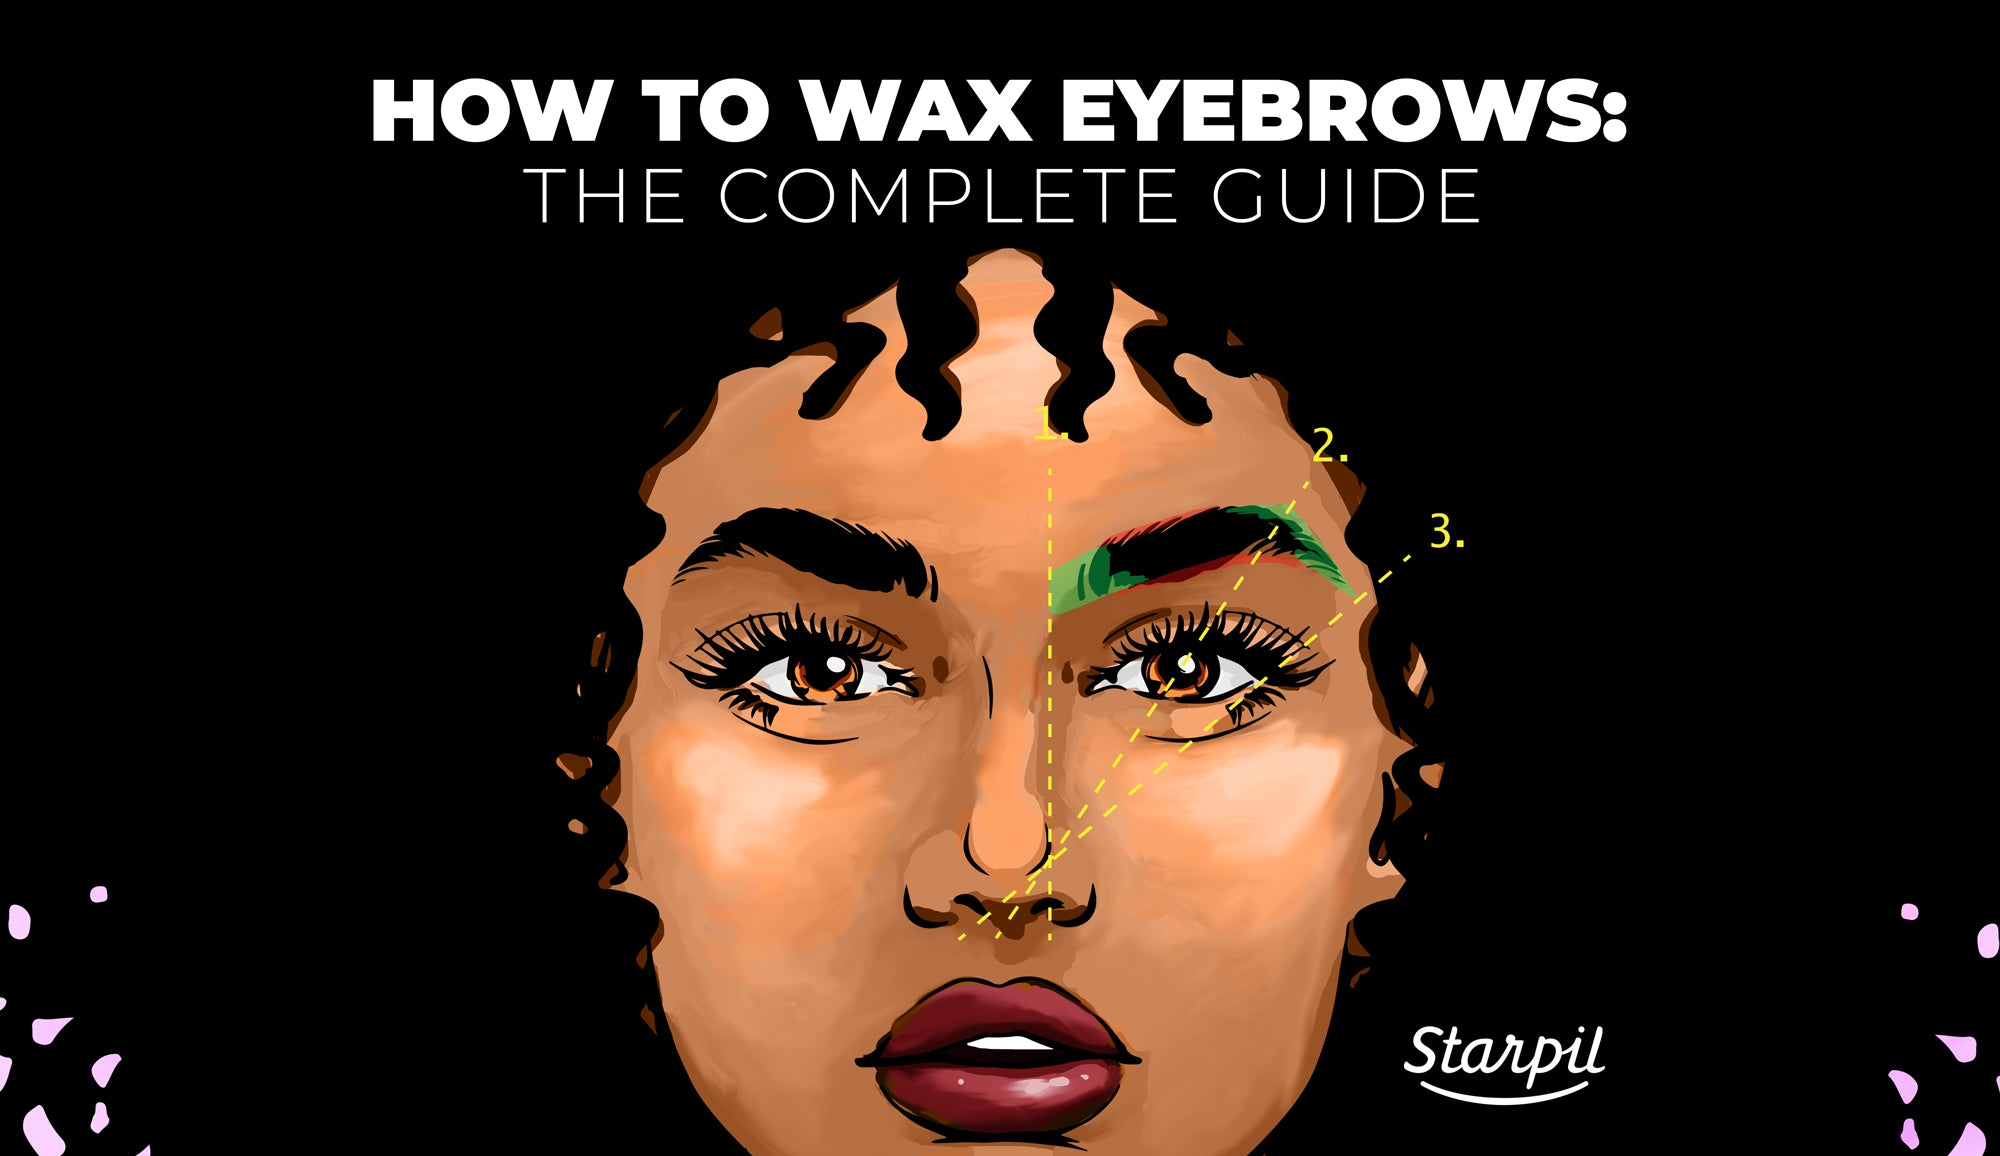 woman's face showing angles for waxing eyebrows